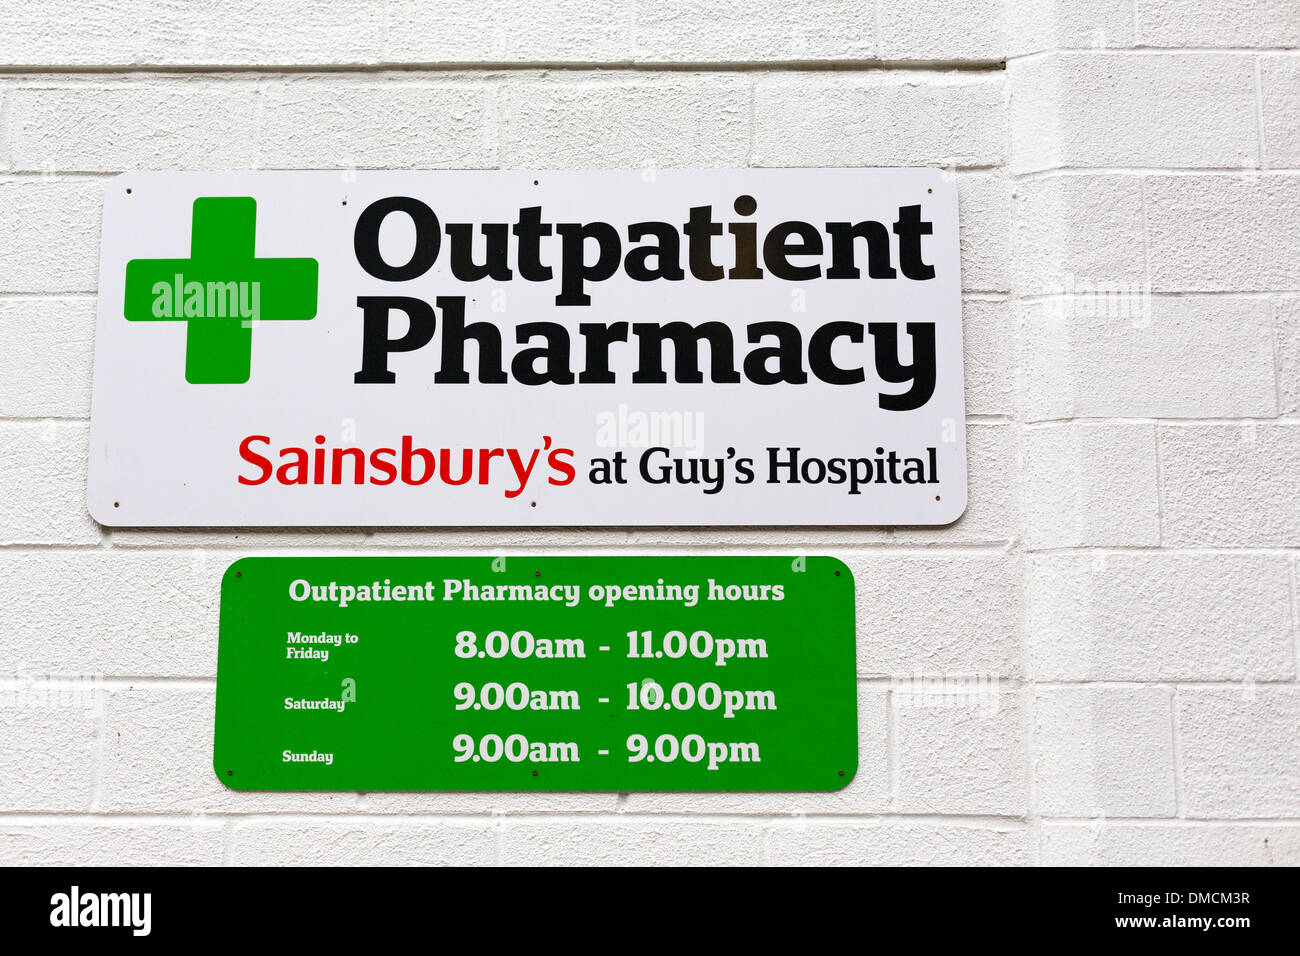 Nhs Pharmacy Sign Stock Photos & Nhs Pharmacy Sign Stock Images - Alamy